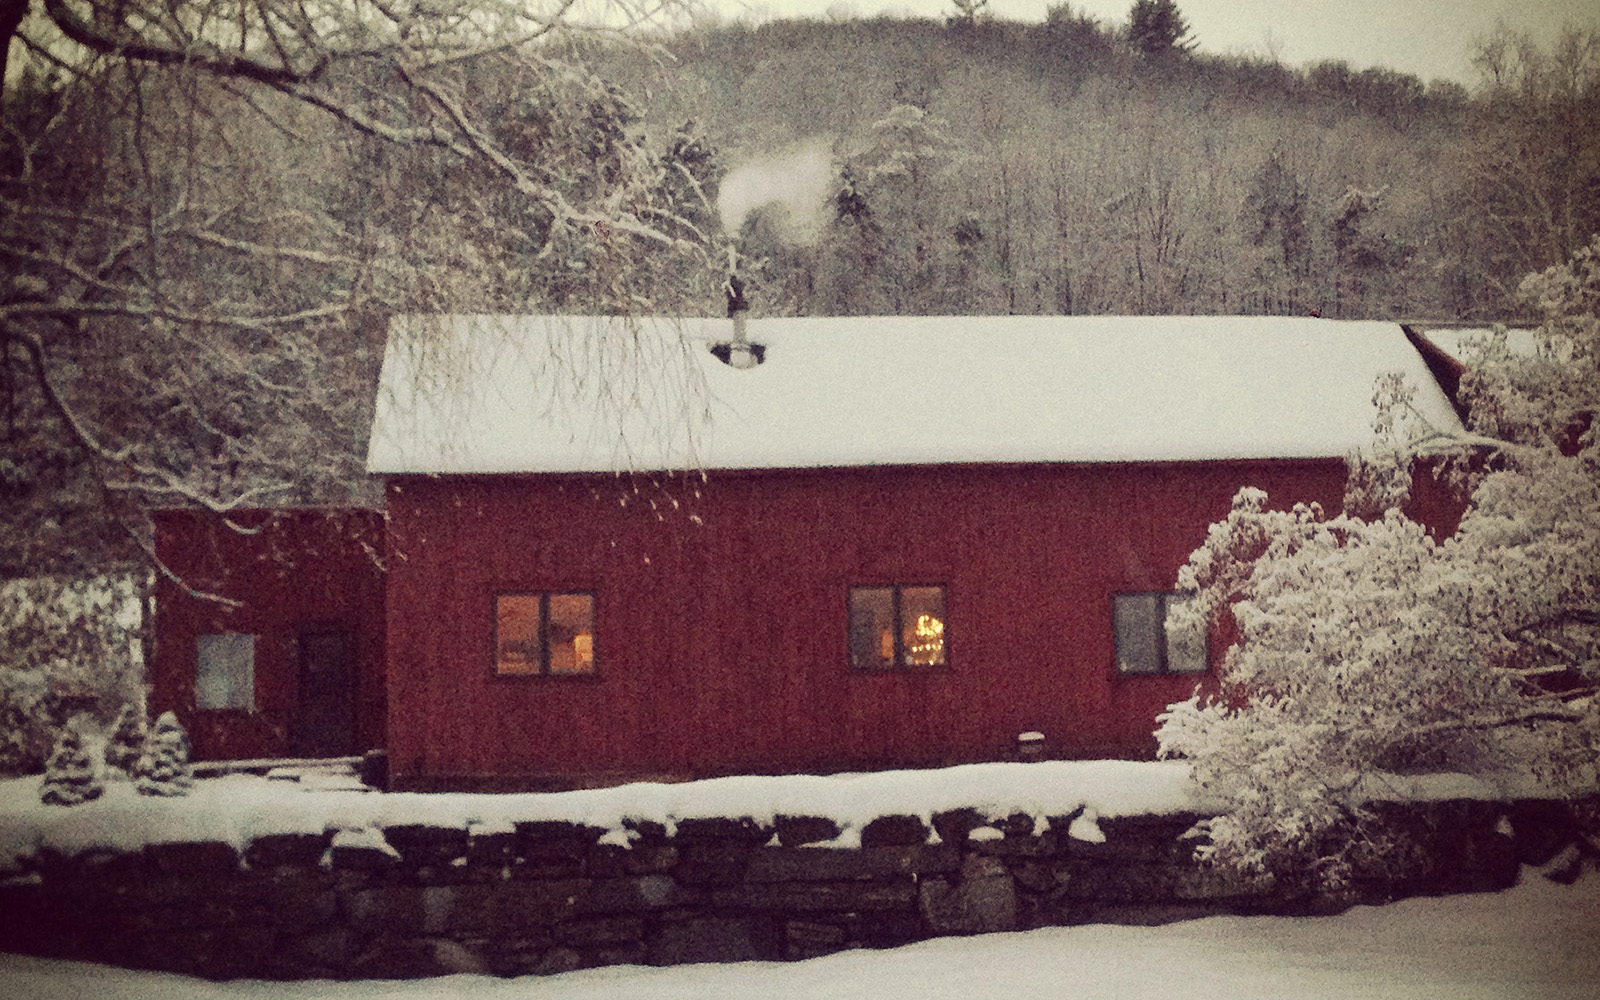 Snow_Barn-FeaturedImage_1600_1000